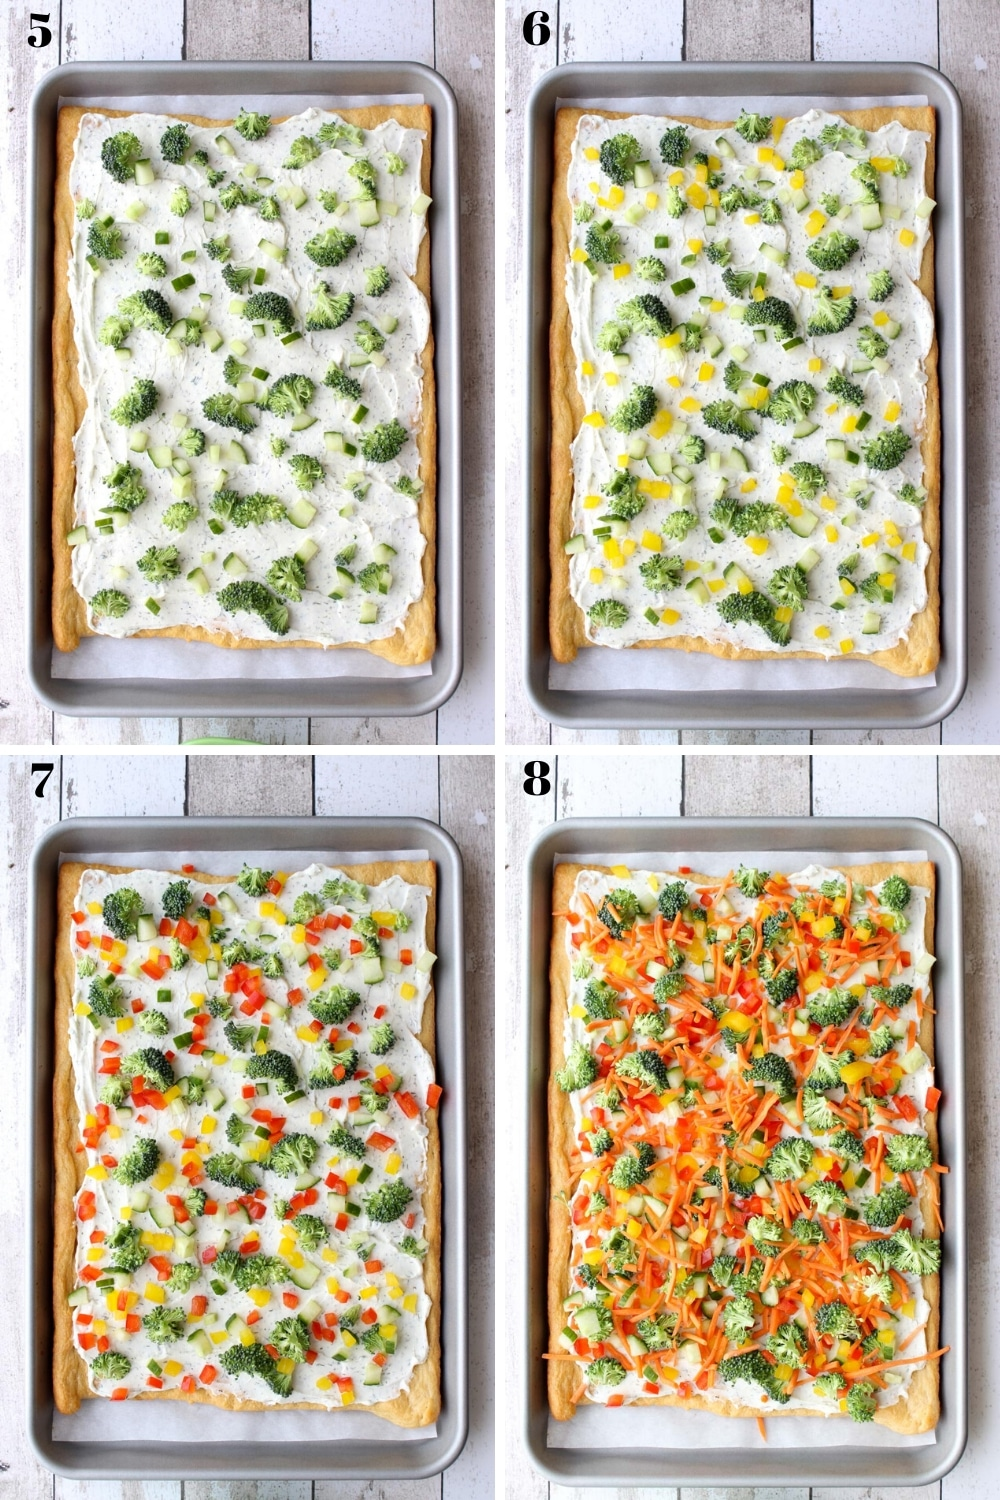 Visual showing steps 5-8 of making veggie pizza